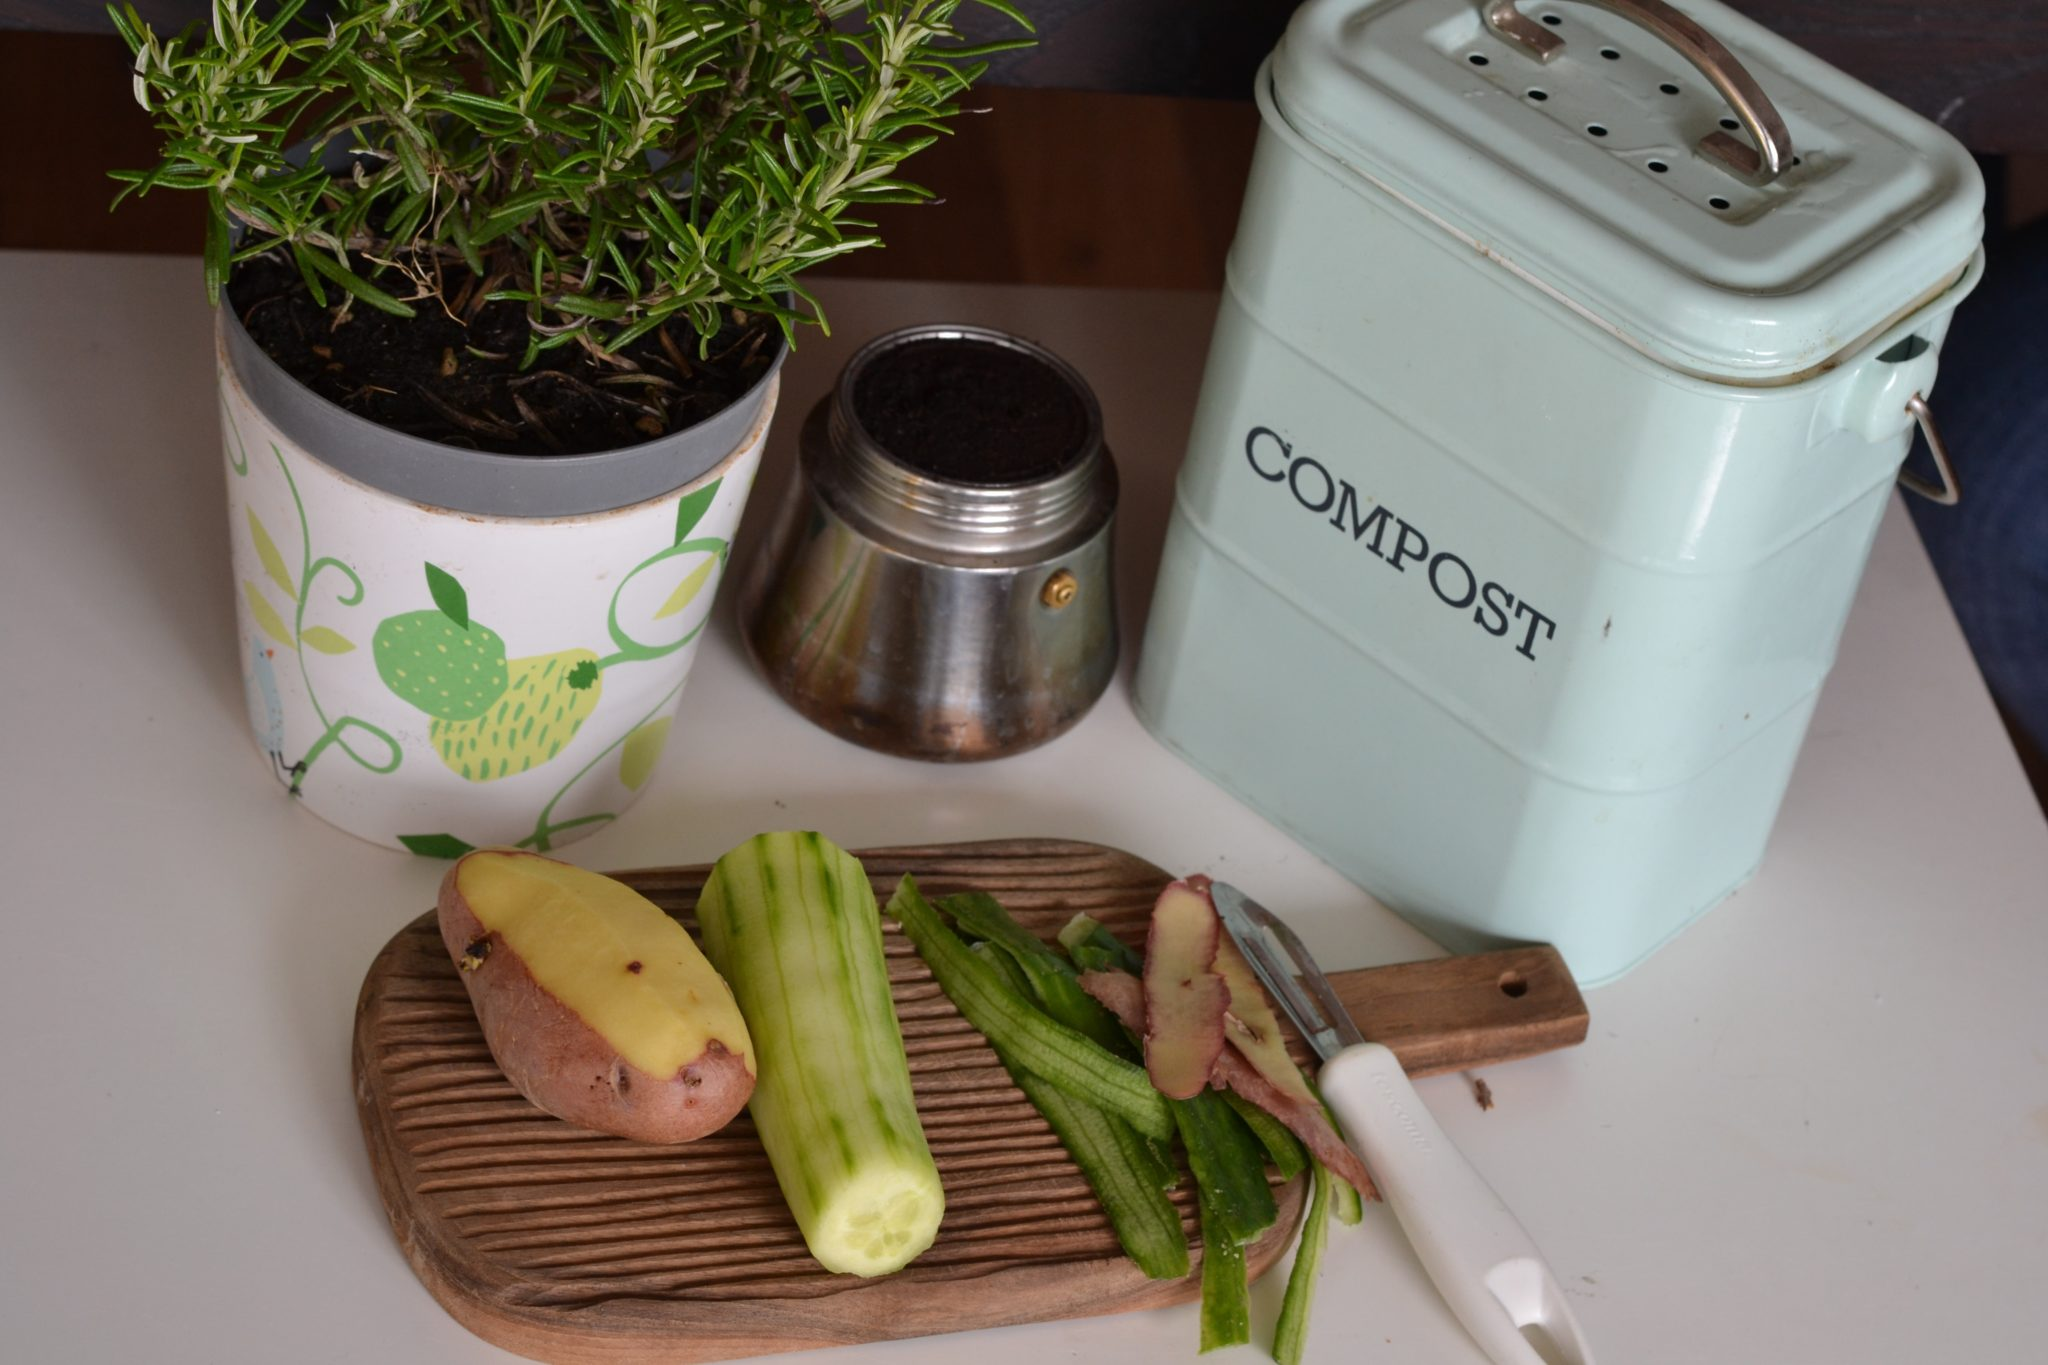 Chopping board with half peeled vegetables in front of a compost container